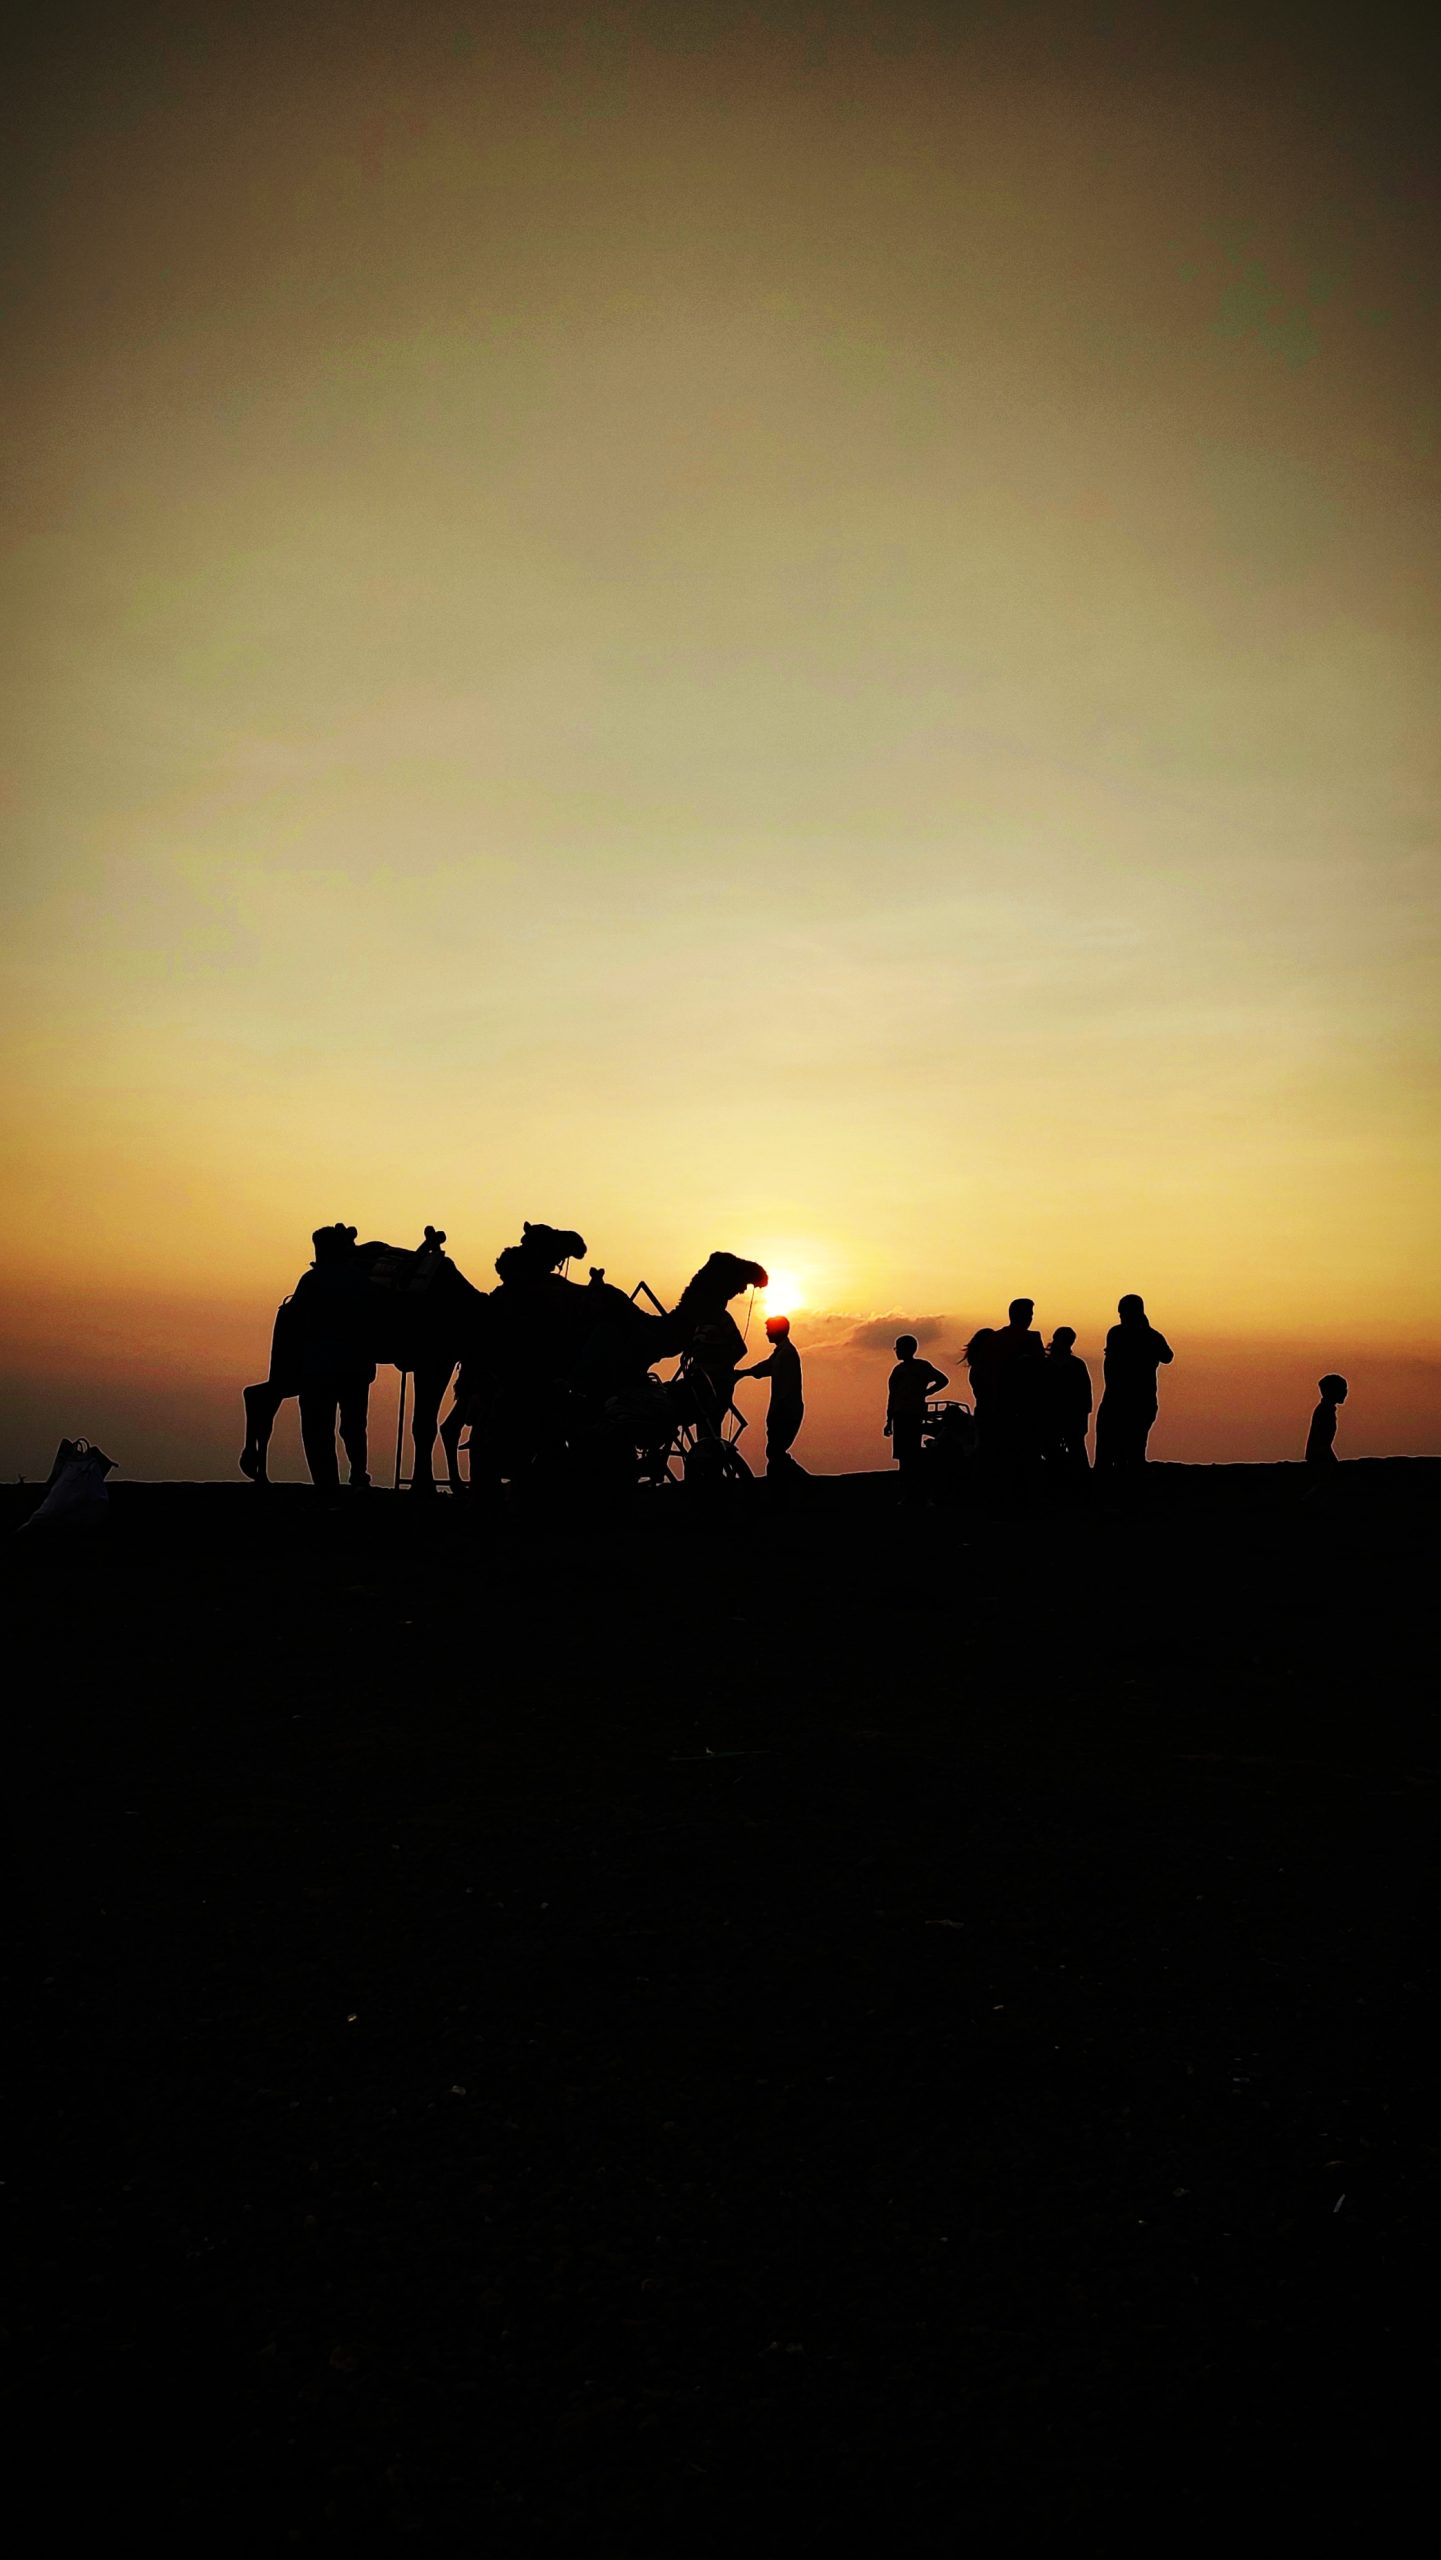 tourists in a desert